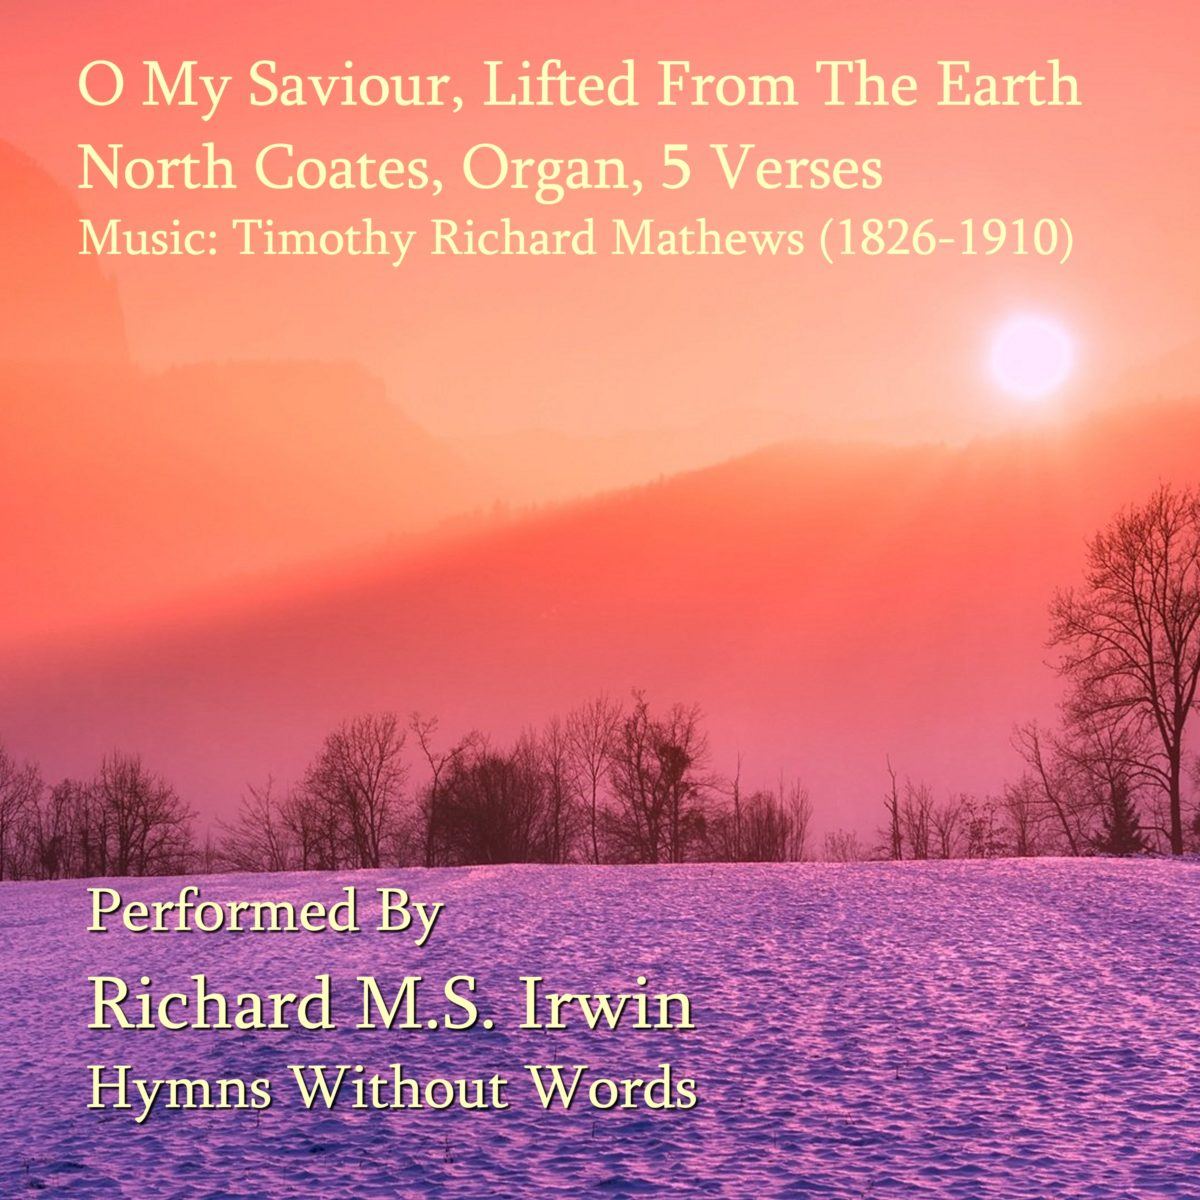 O My Saviour Lifted (North Coates, Organ, 5 Verses)